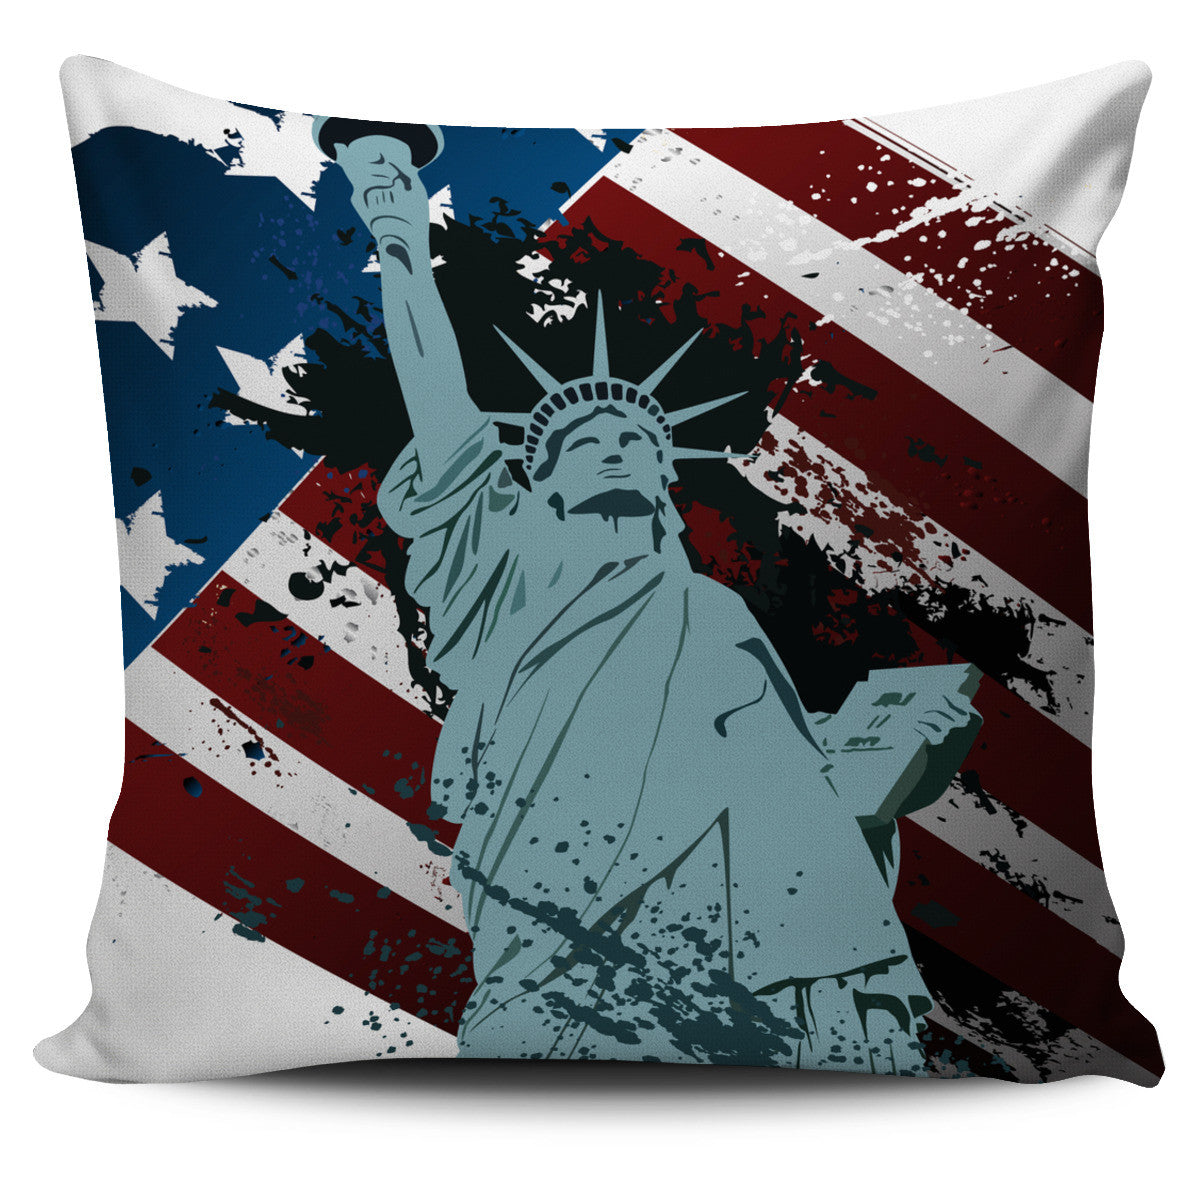 Statue of Liberty Pillow Cover Offer